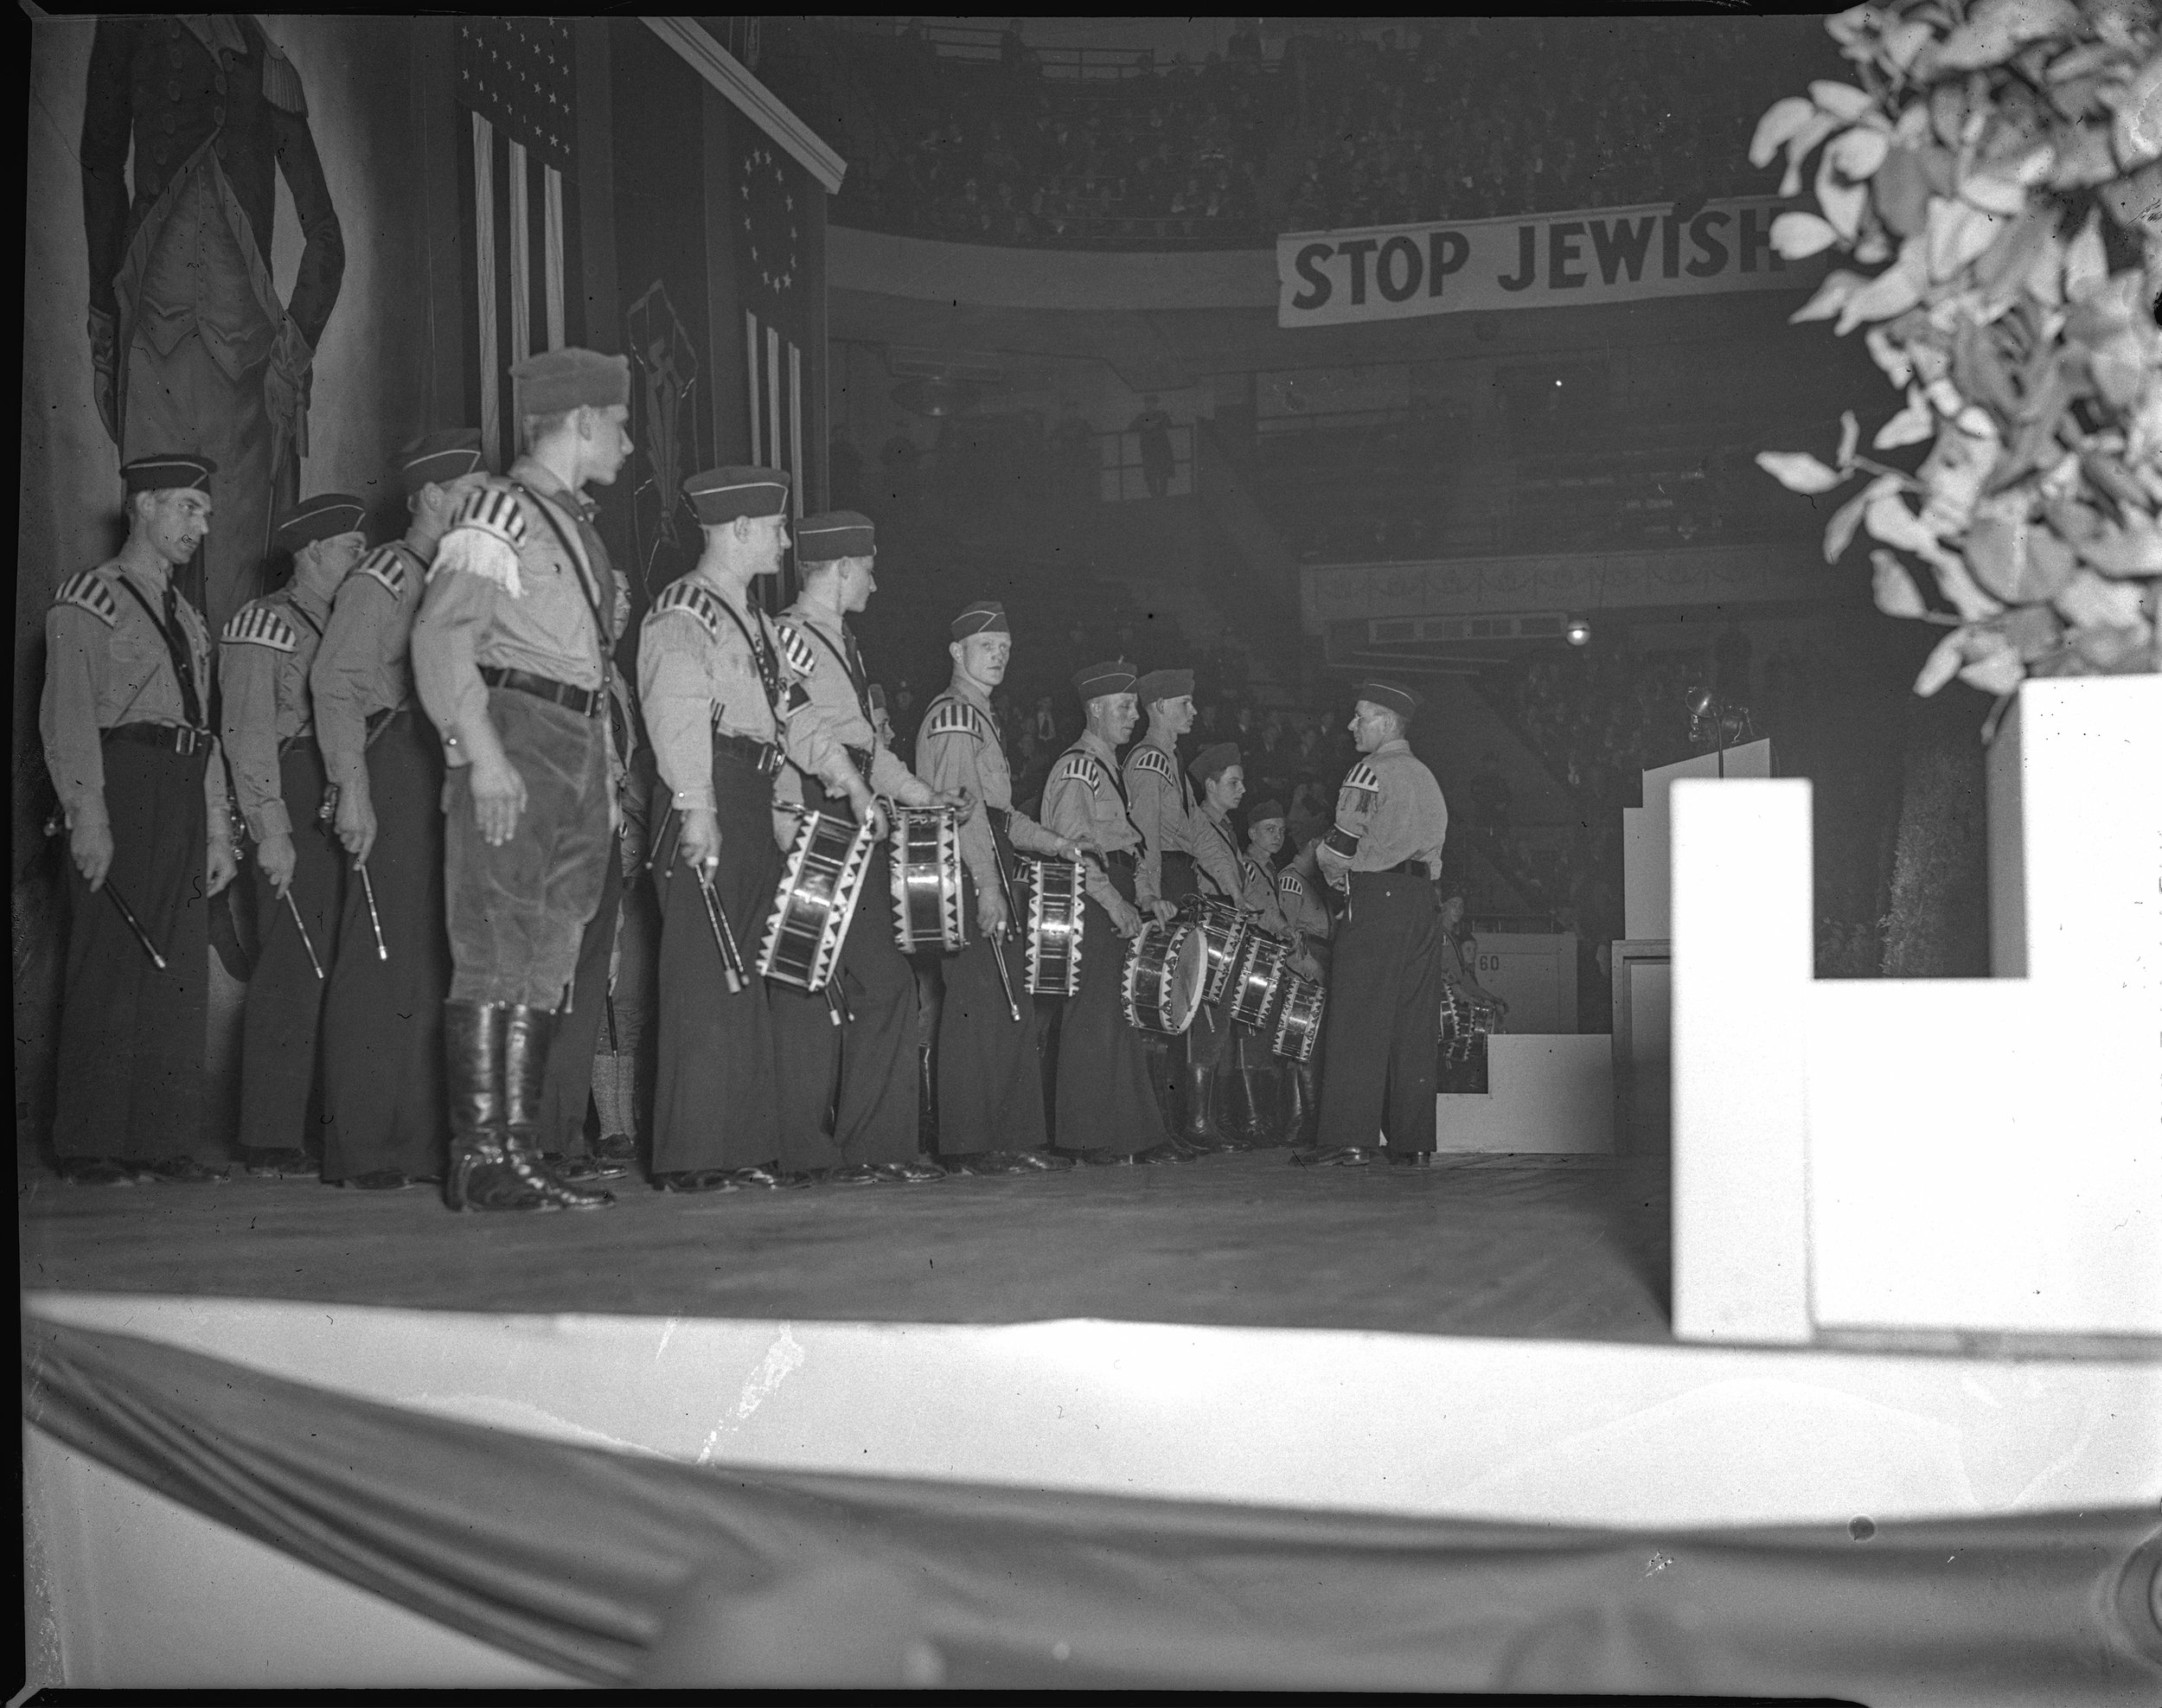 German American Bund members in Madison Square Garden, February 20th, 1939 with a banner of George Washington behind them. NYPD_22066j, NYPD Collection, NYC Municipal Archives.